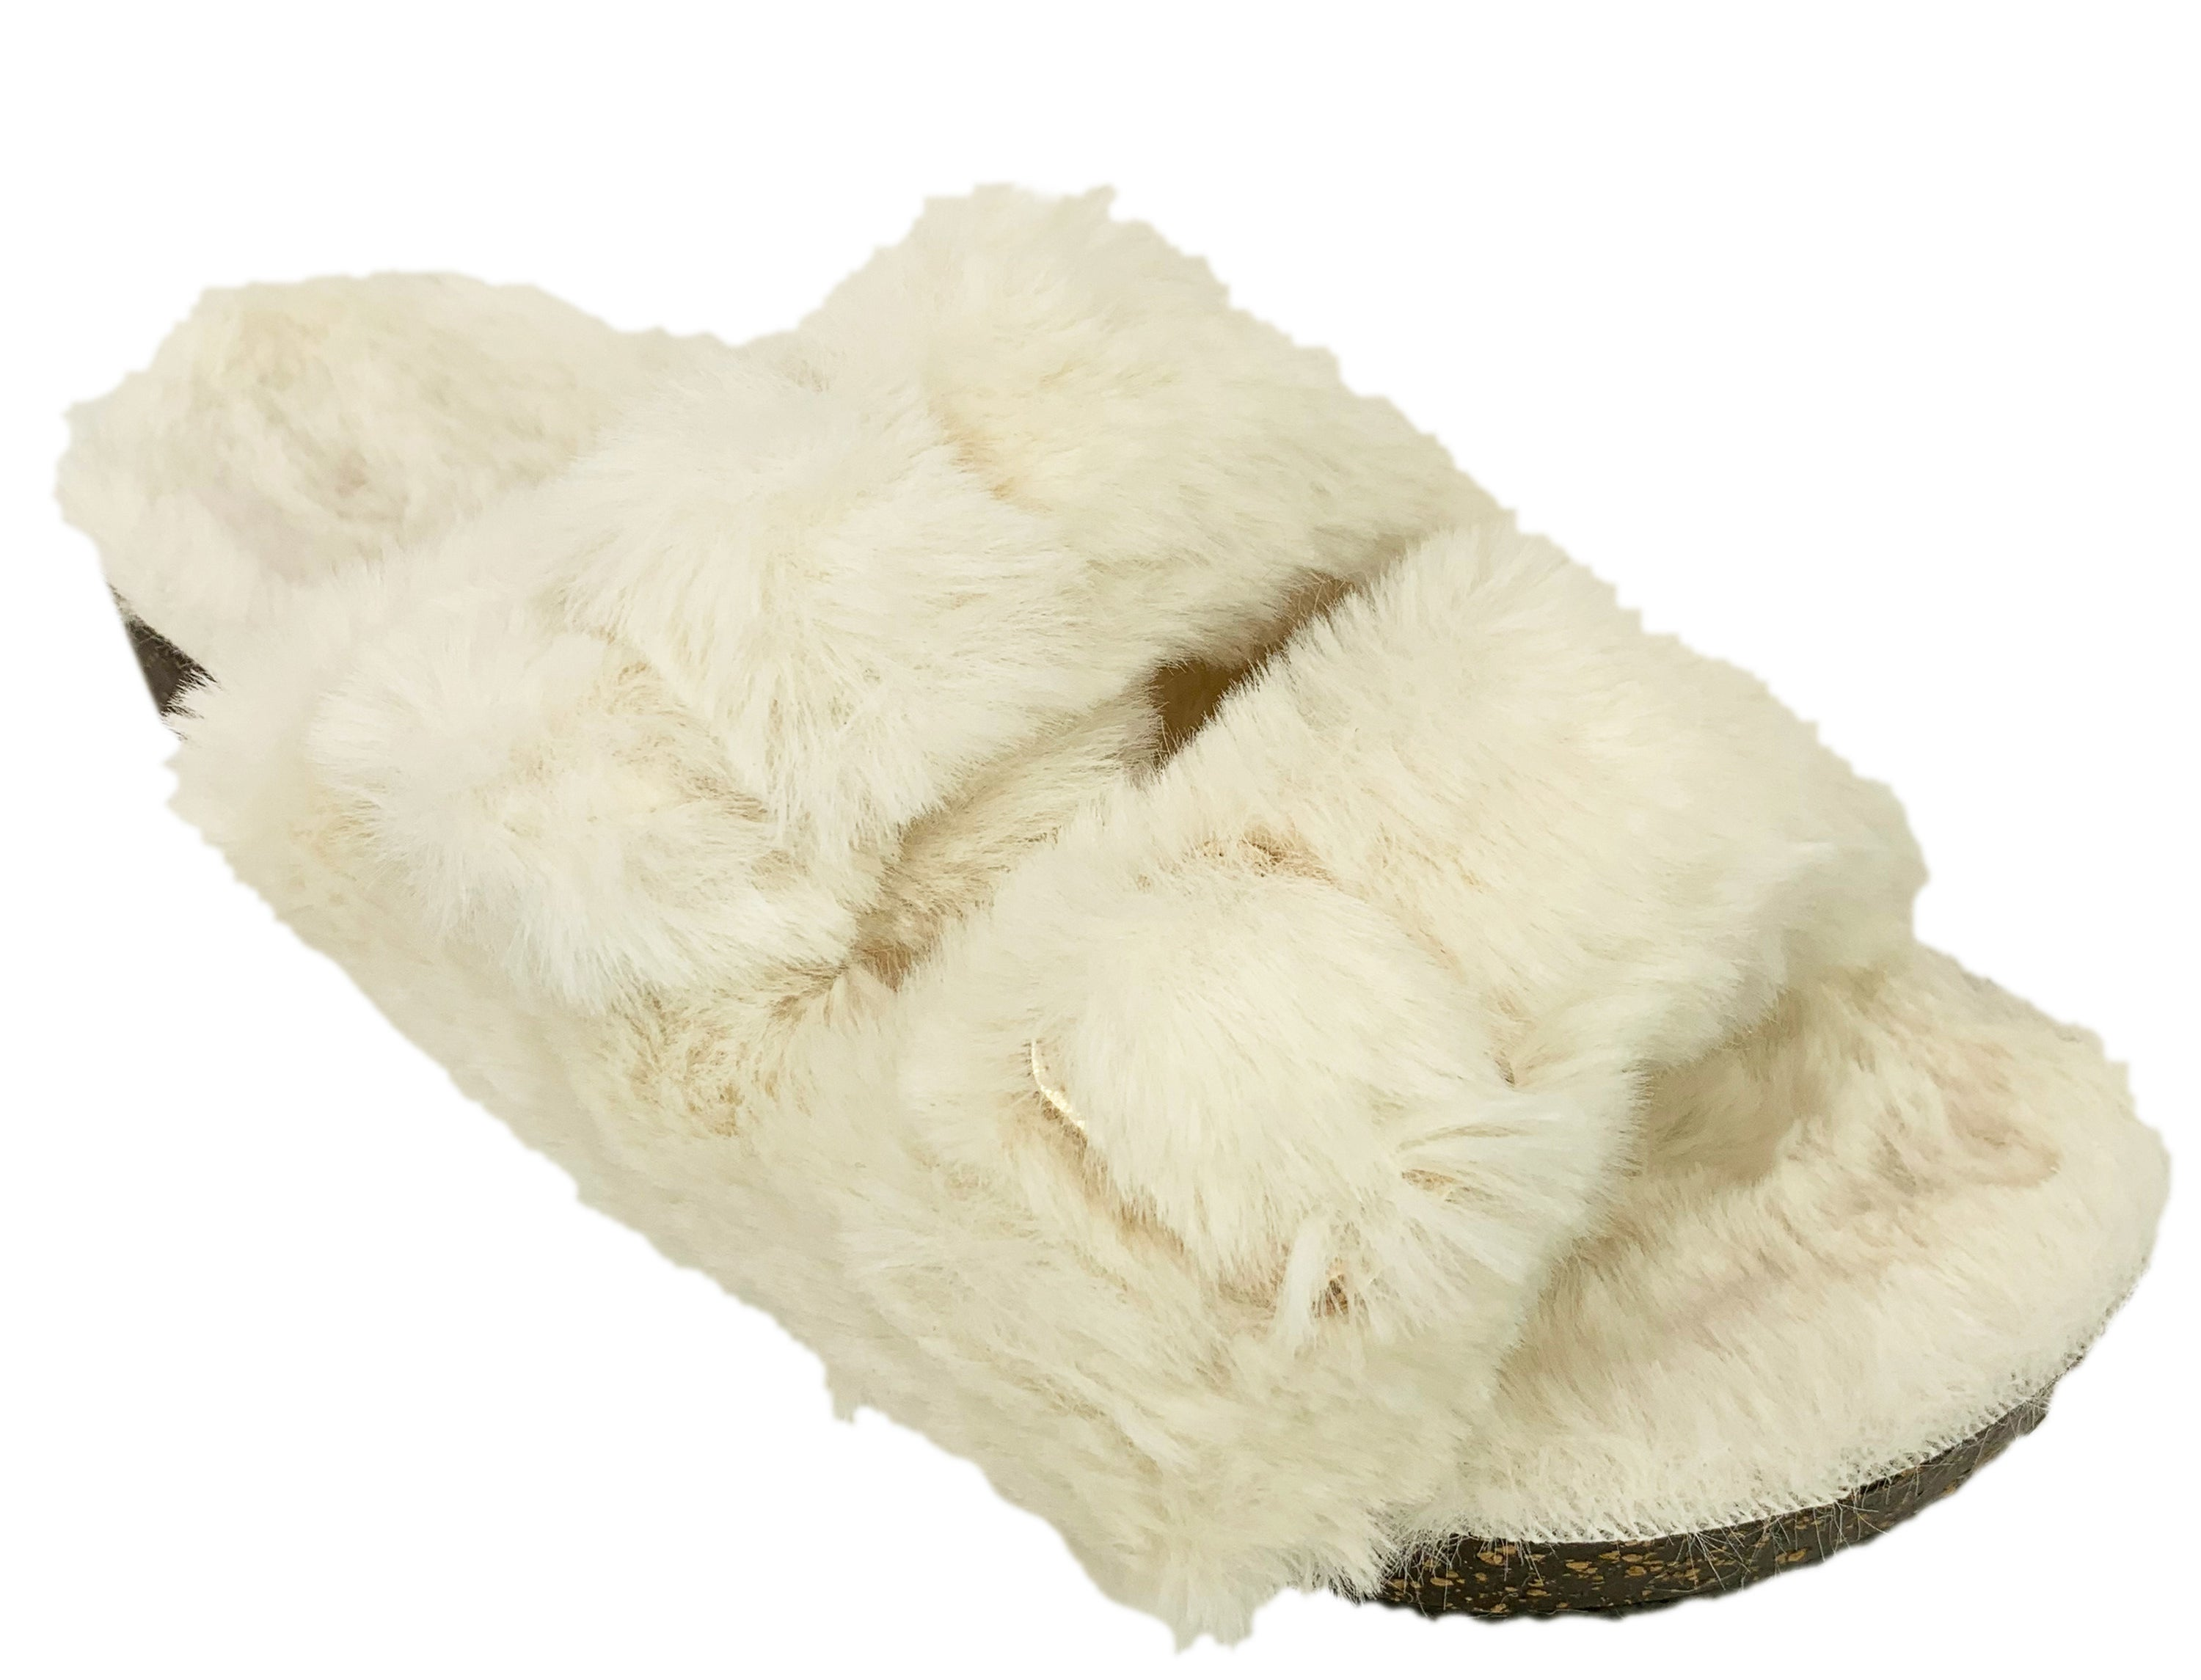 a pair of white fluffy slippers